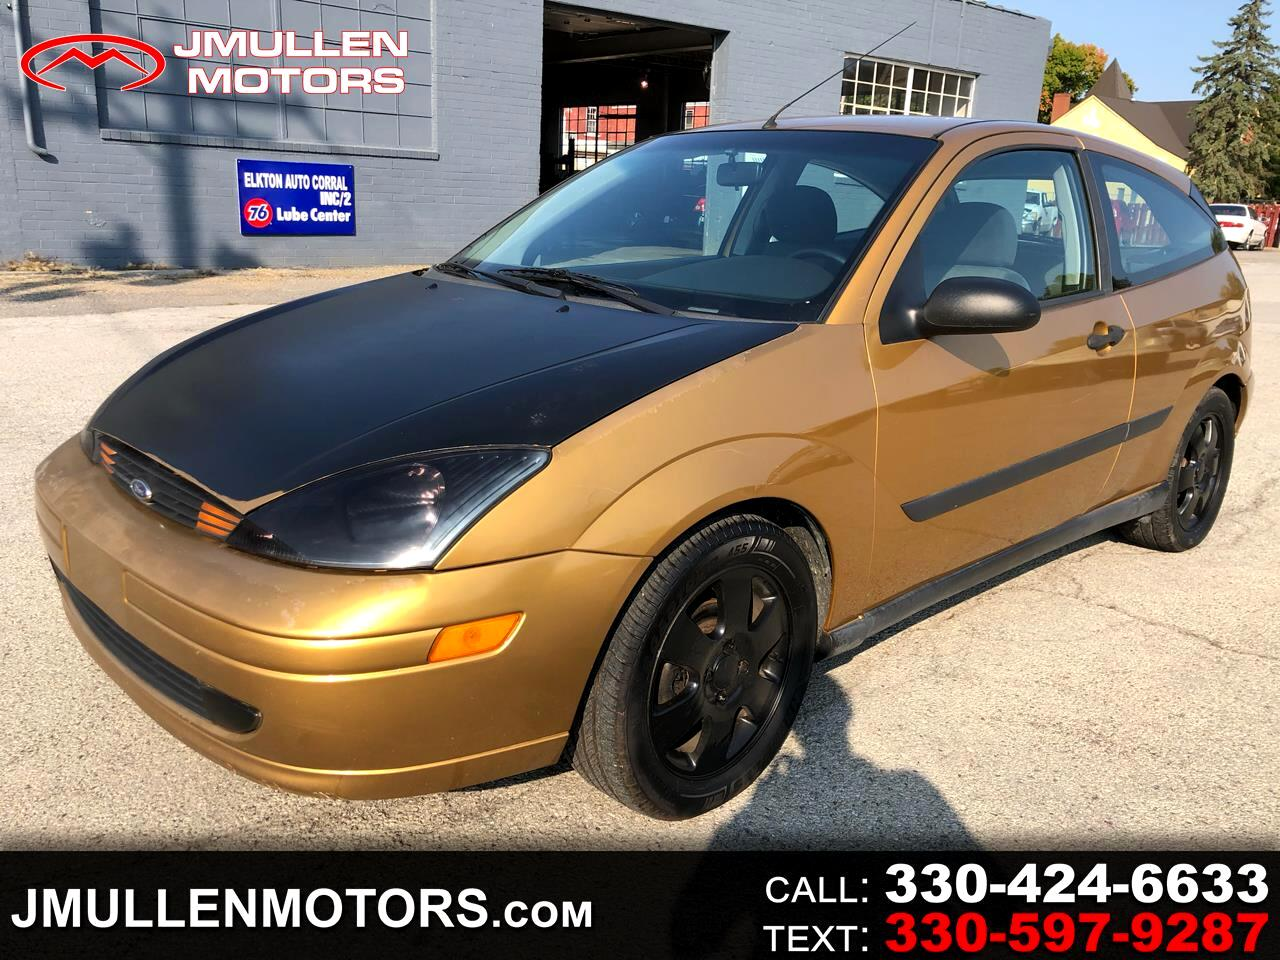 used cars lisbon oh used cars trucks oh jmullen motors used cars lisbon oh used cars